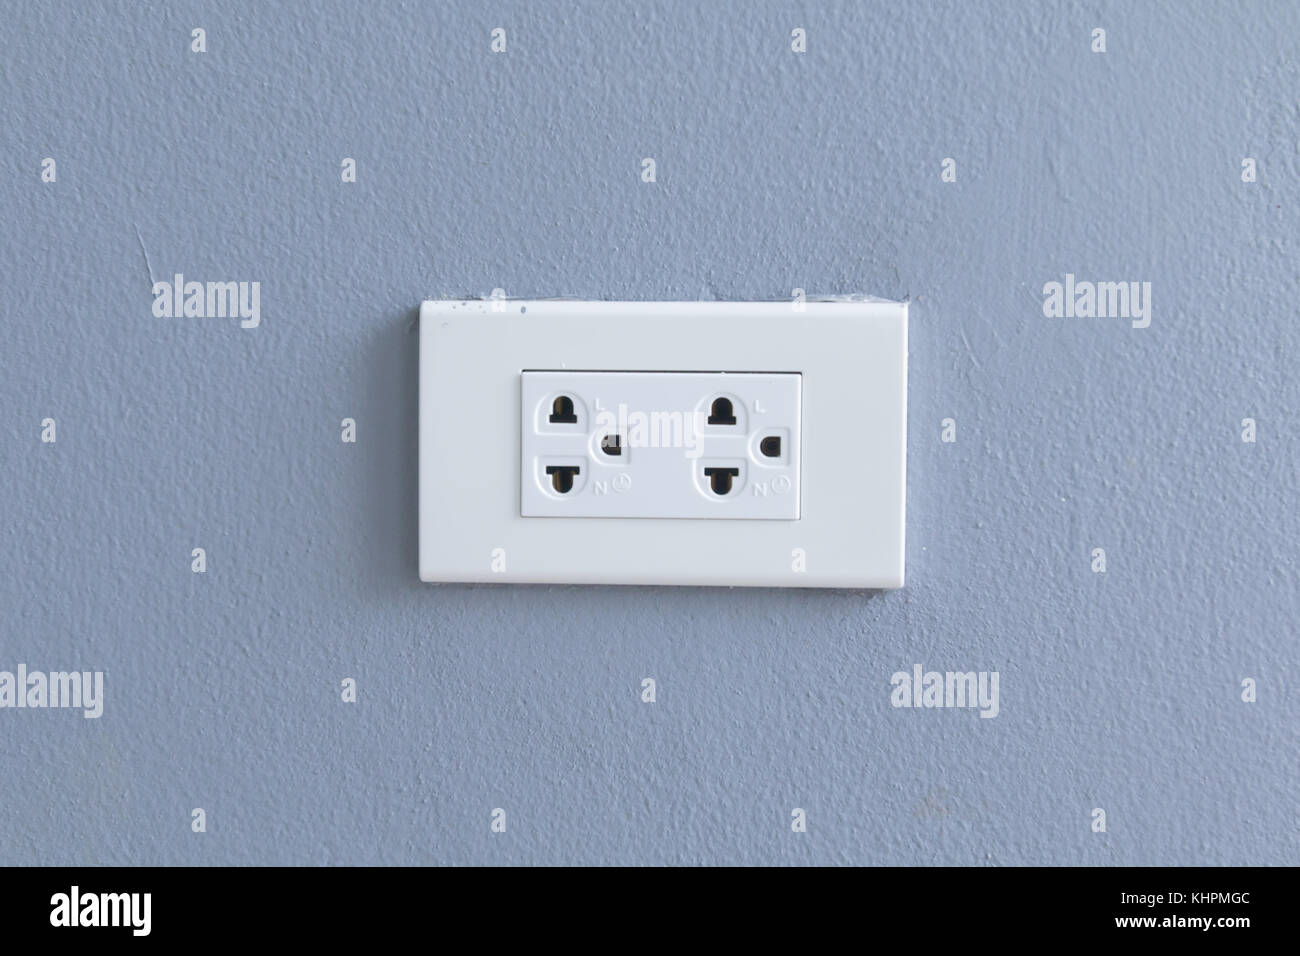 Electrical Plugs In Outlet Stockfotos & Electrical Plugs In Outlet ...